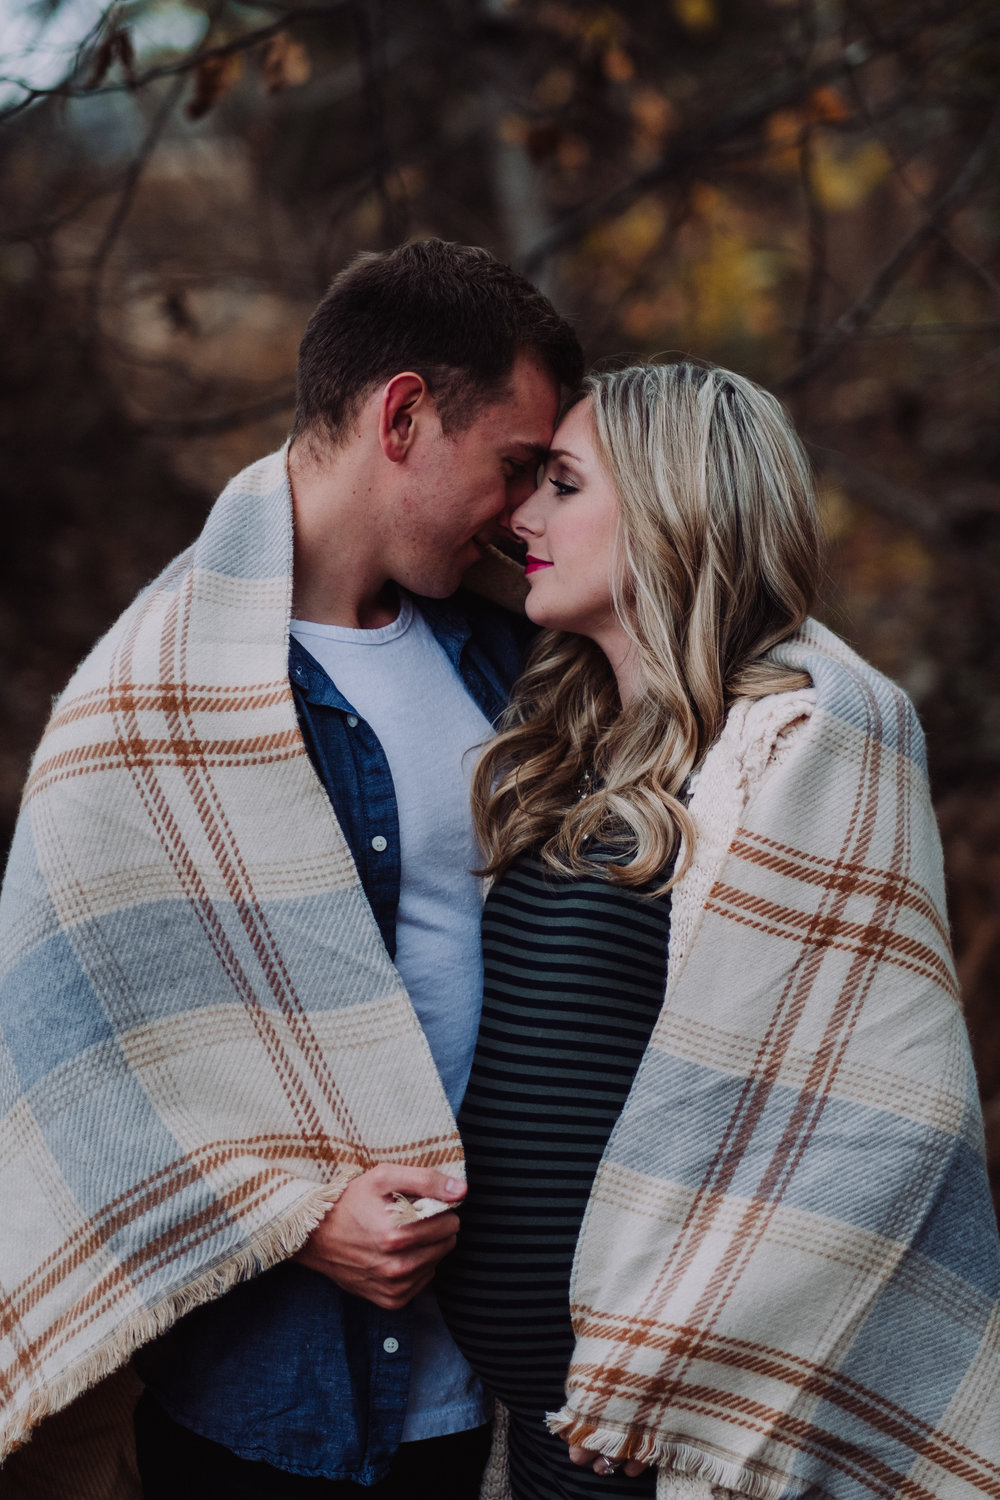 Micah.Chris.Maternity.2016.Delyn.Megan.Stirewalt-22.jpg